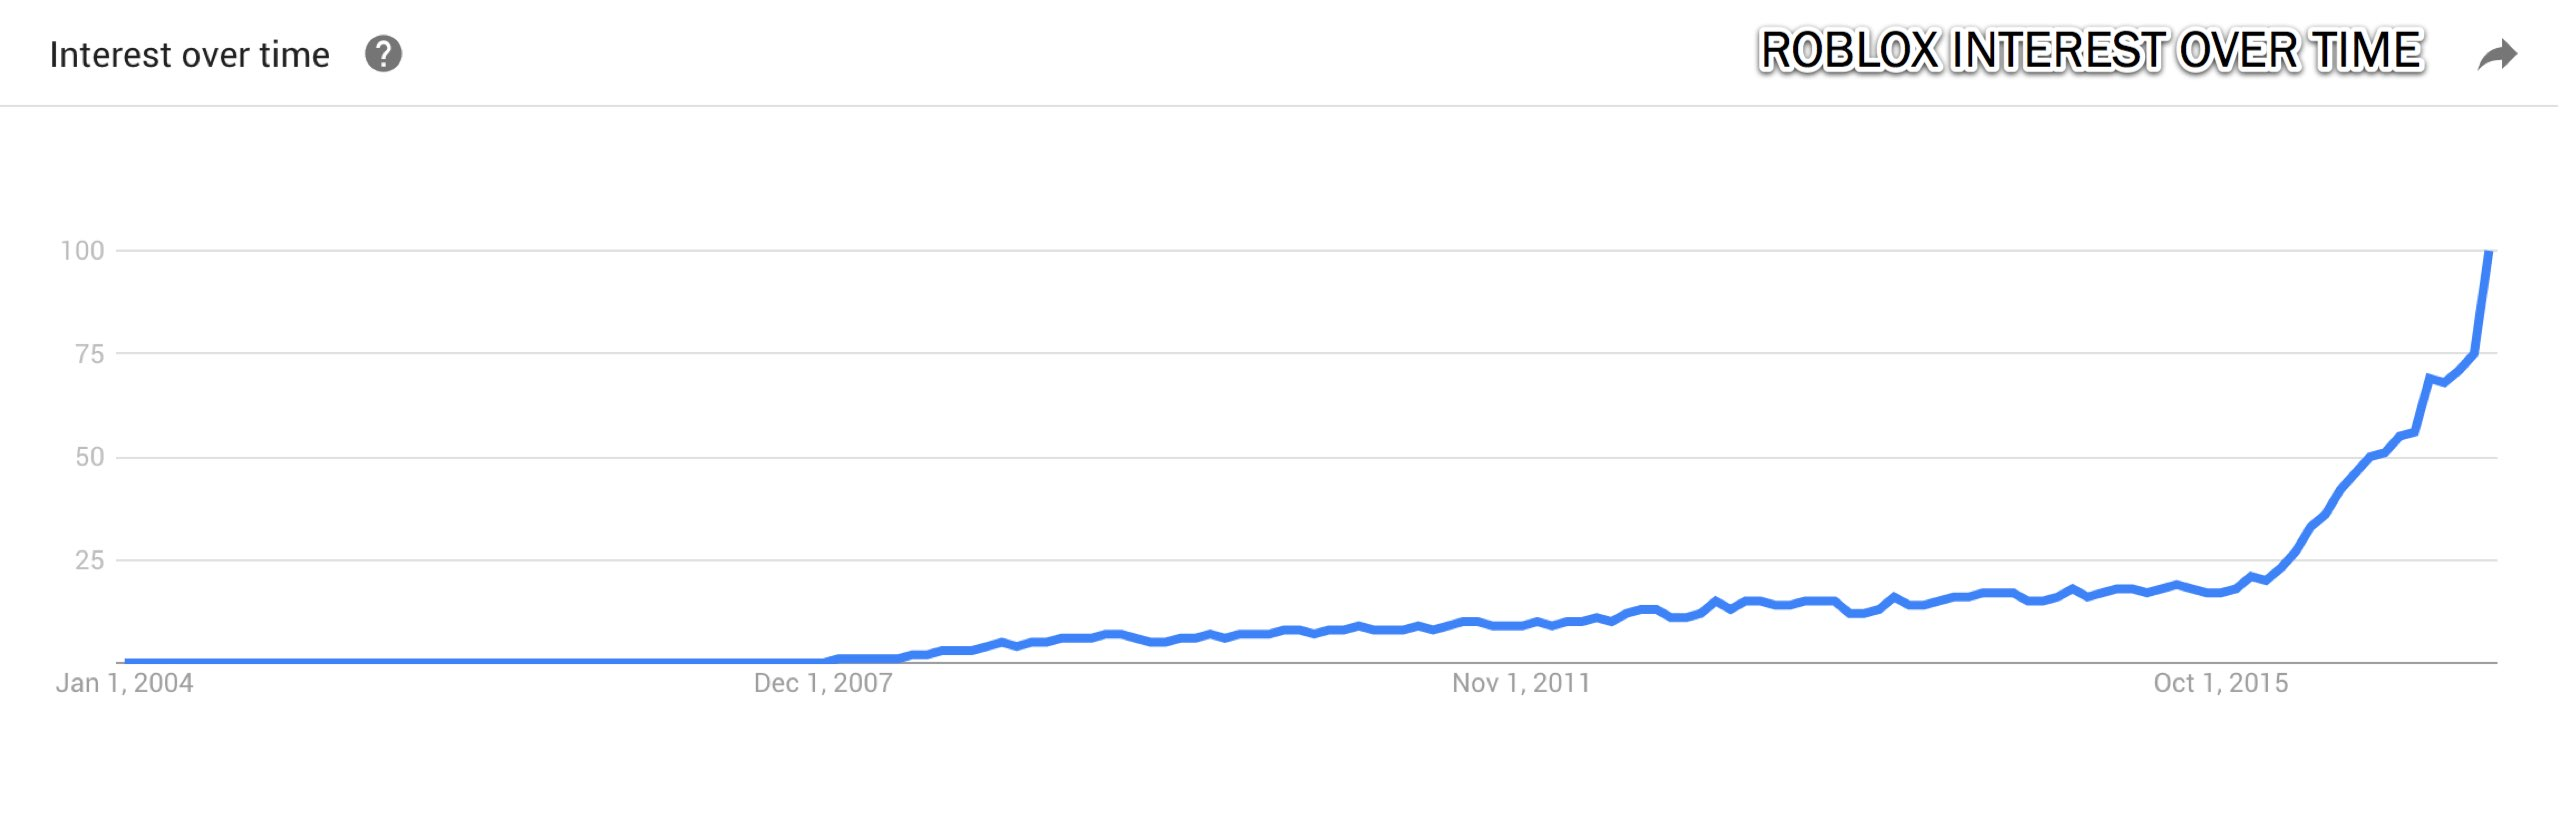 Roblox Interest Over Time